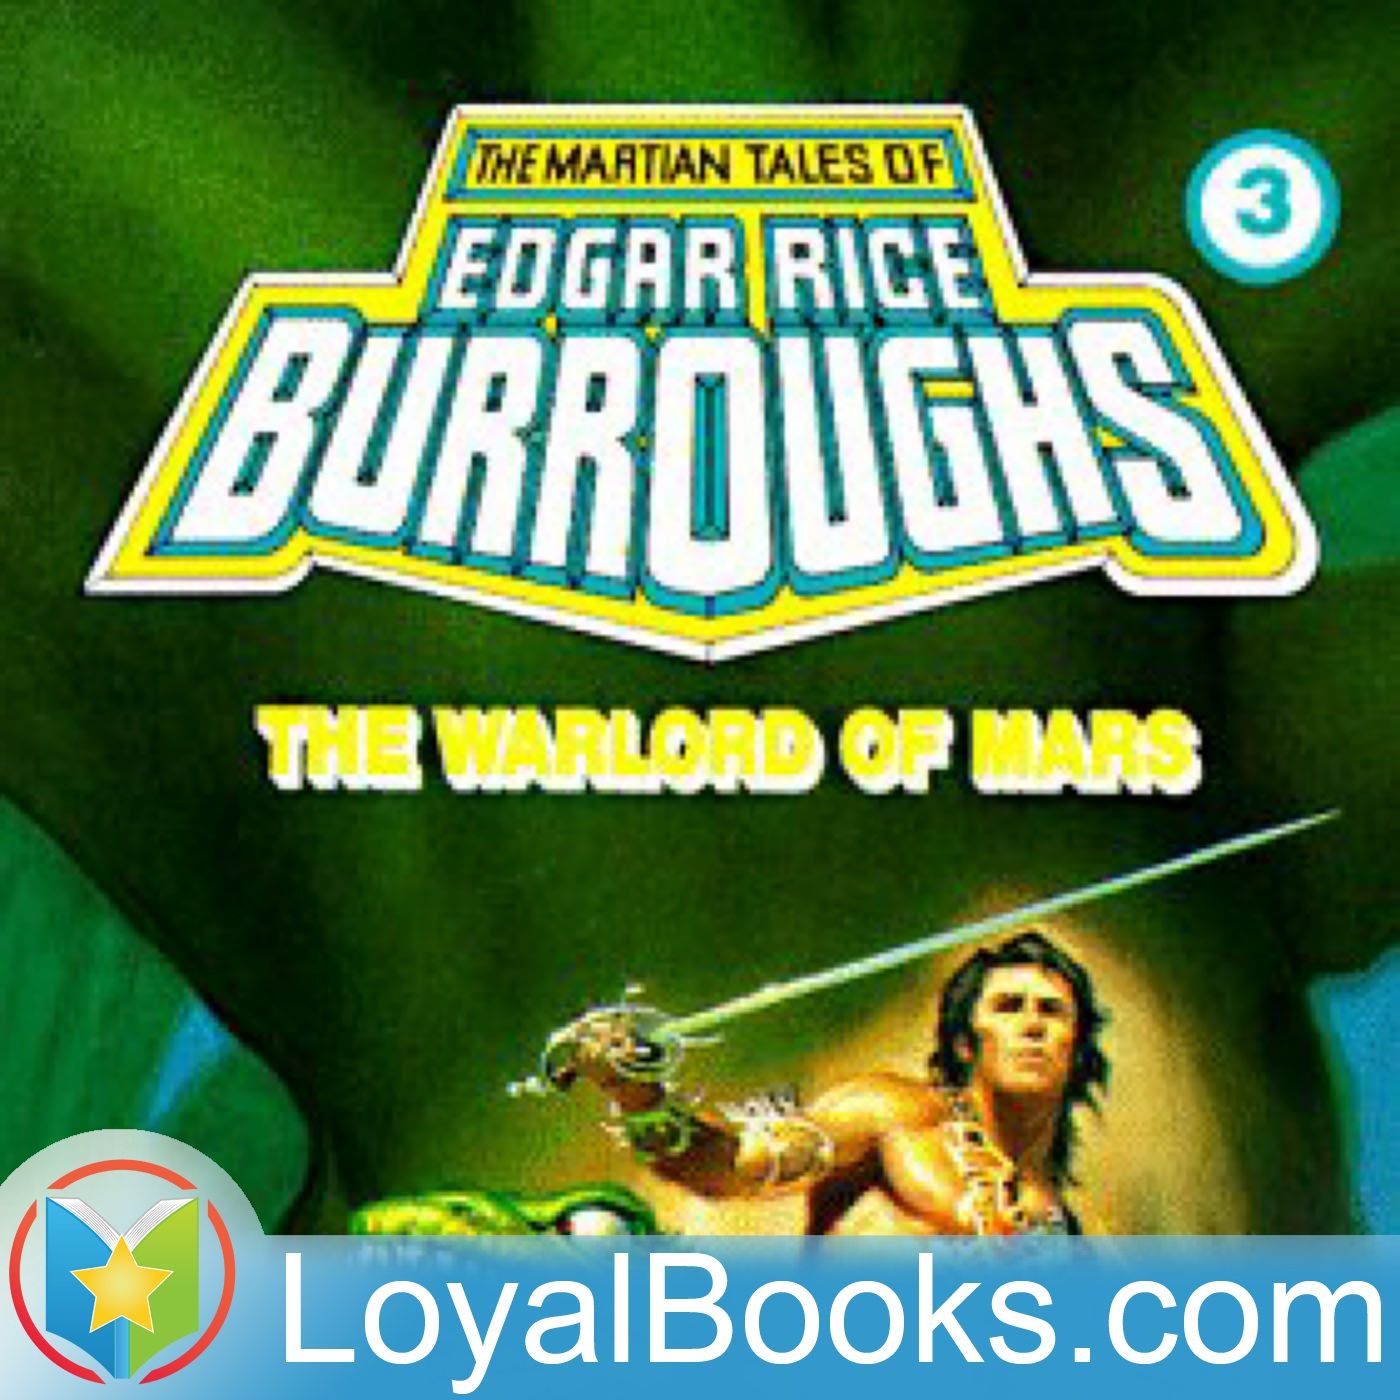 <![CDATA[Warlord of Mars by Edgar Rice Burroughs]]>